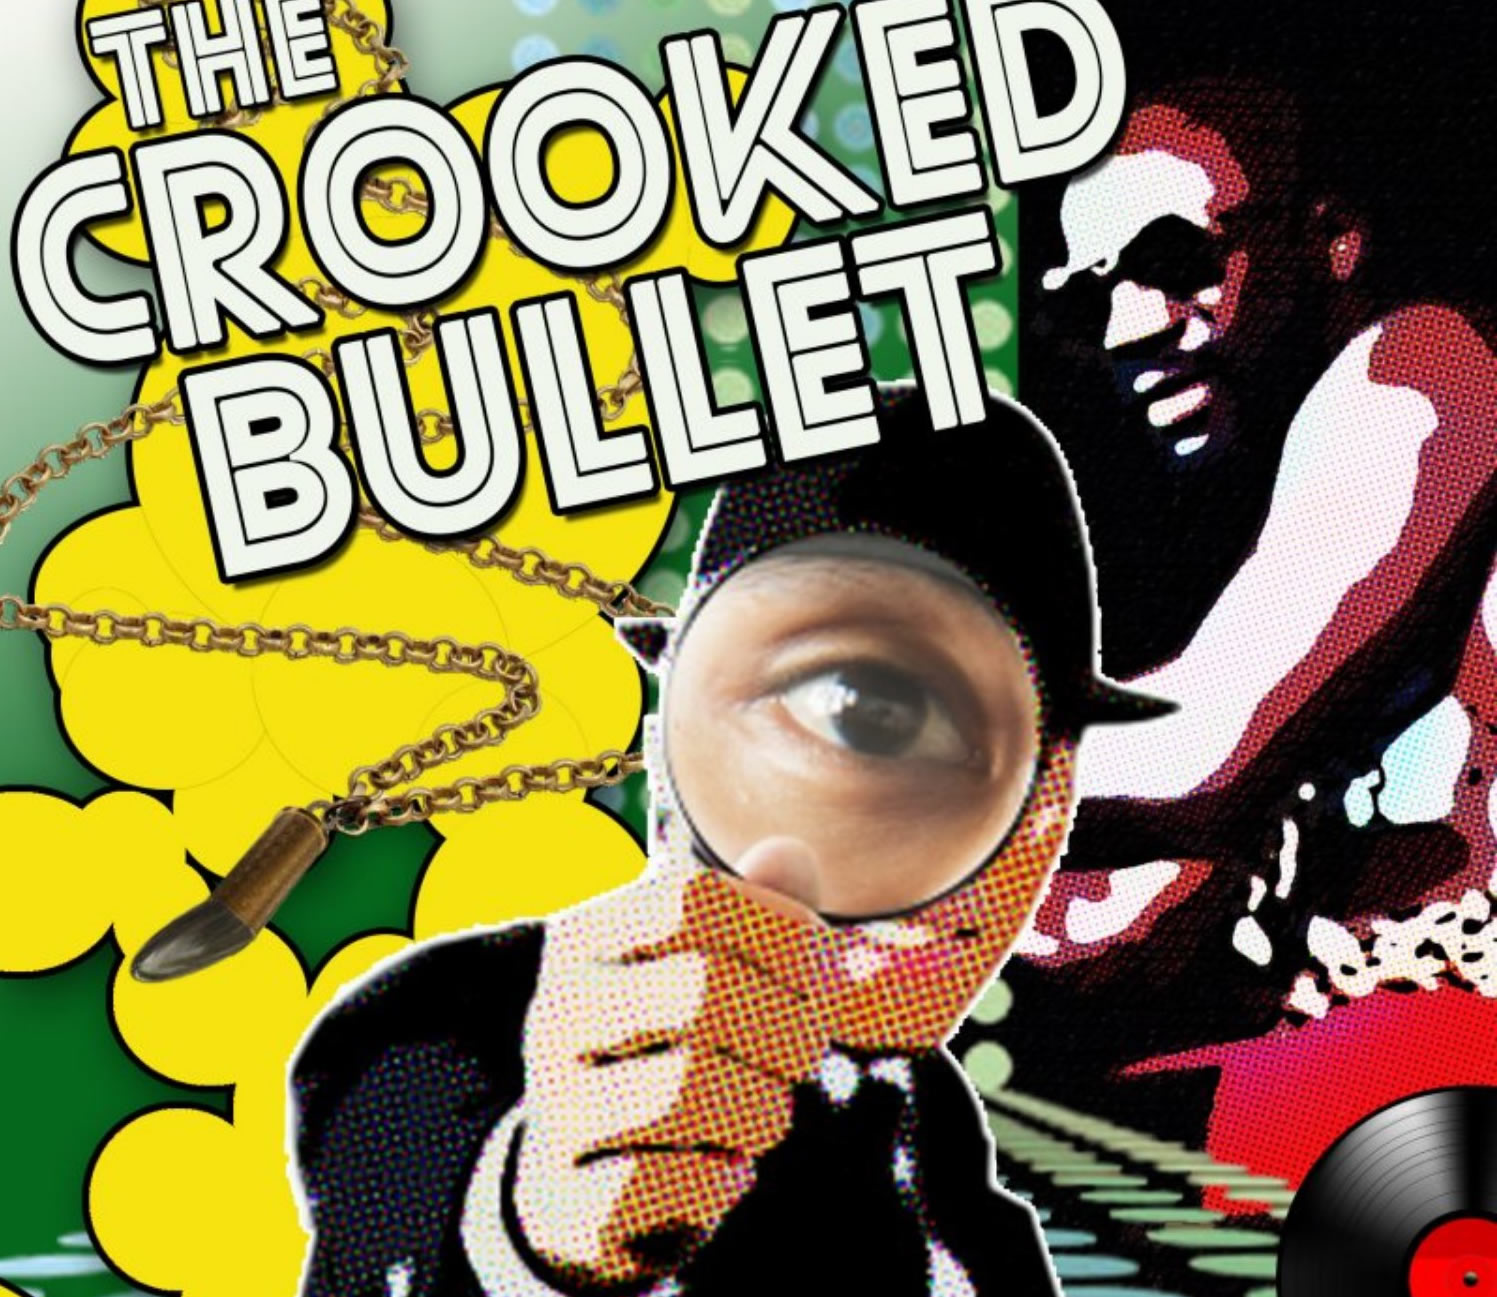 Gathering The Crooked Bullet 10